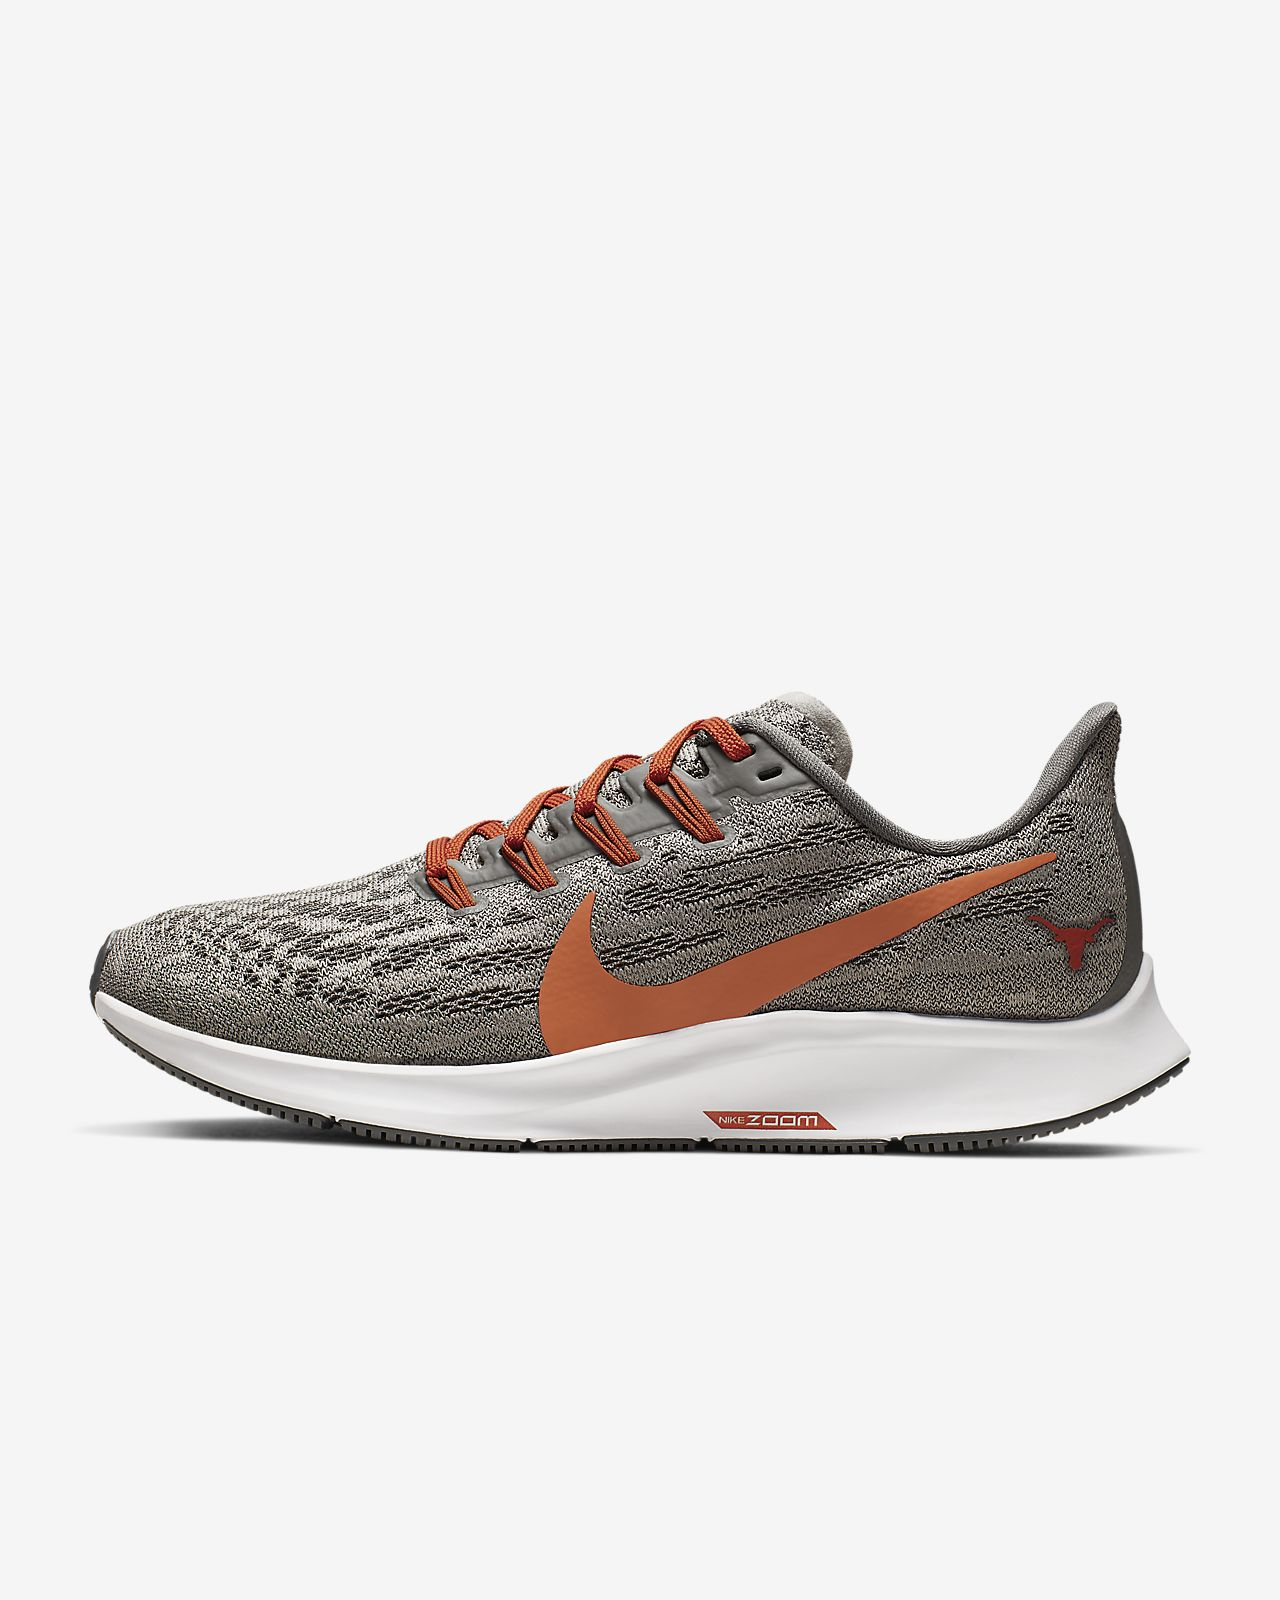 Nike Air Zoom Pegasus 36 (Texas) Women's Running Shoe